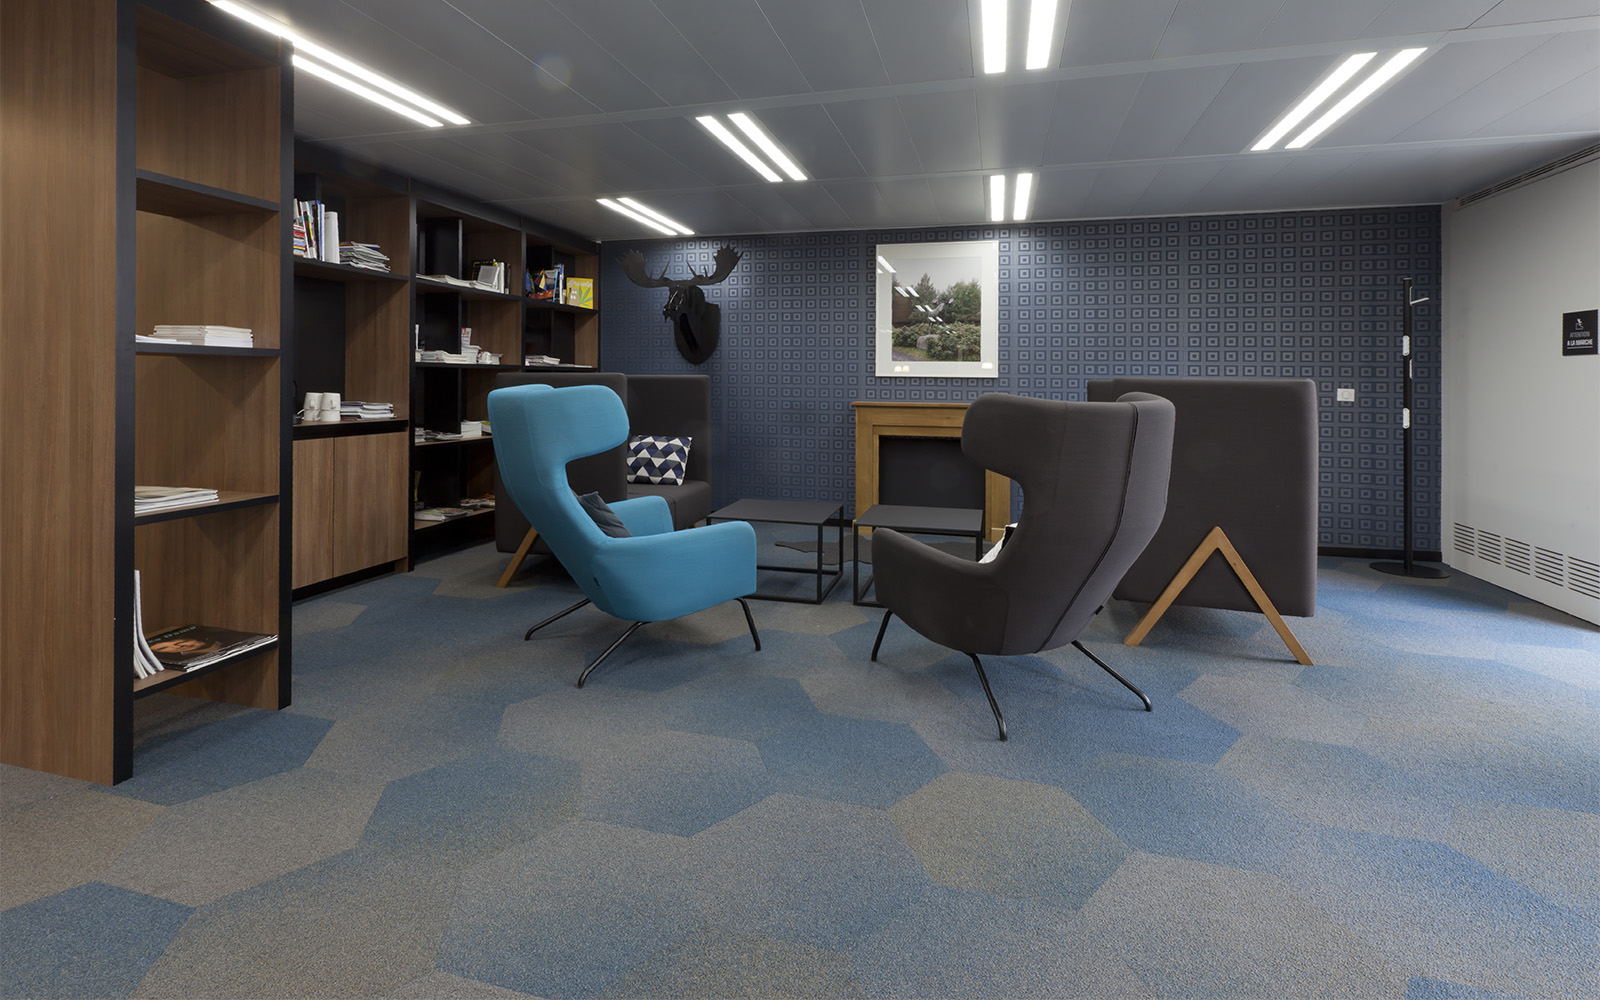 Three Extraordinary Carpet Tile Deigns For Offices